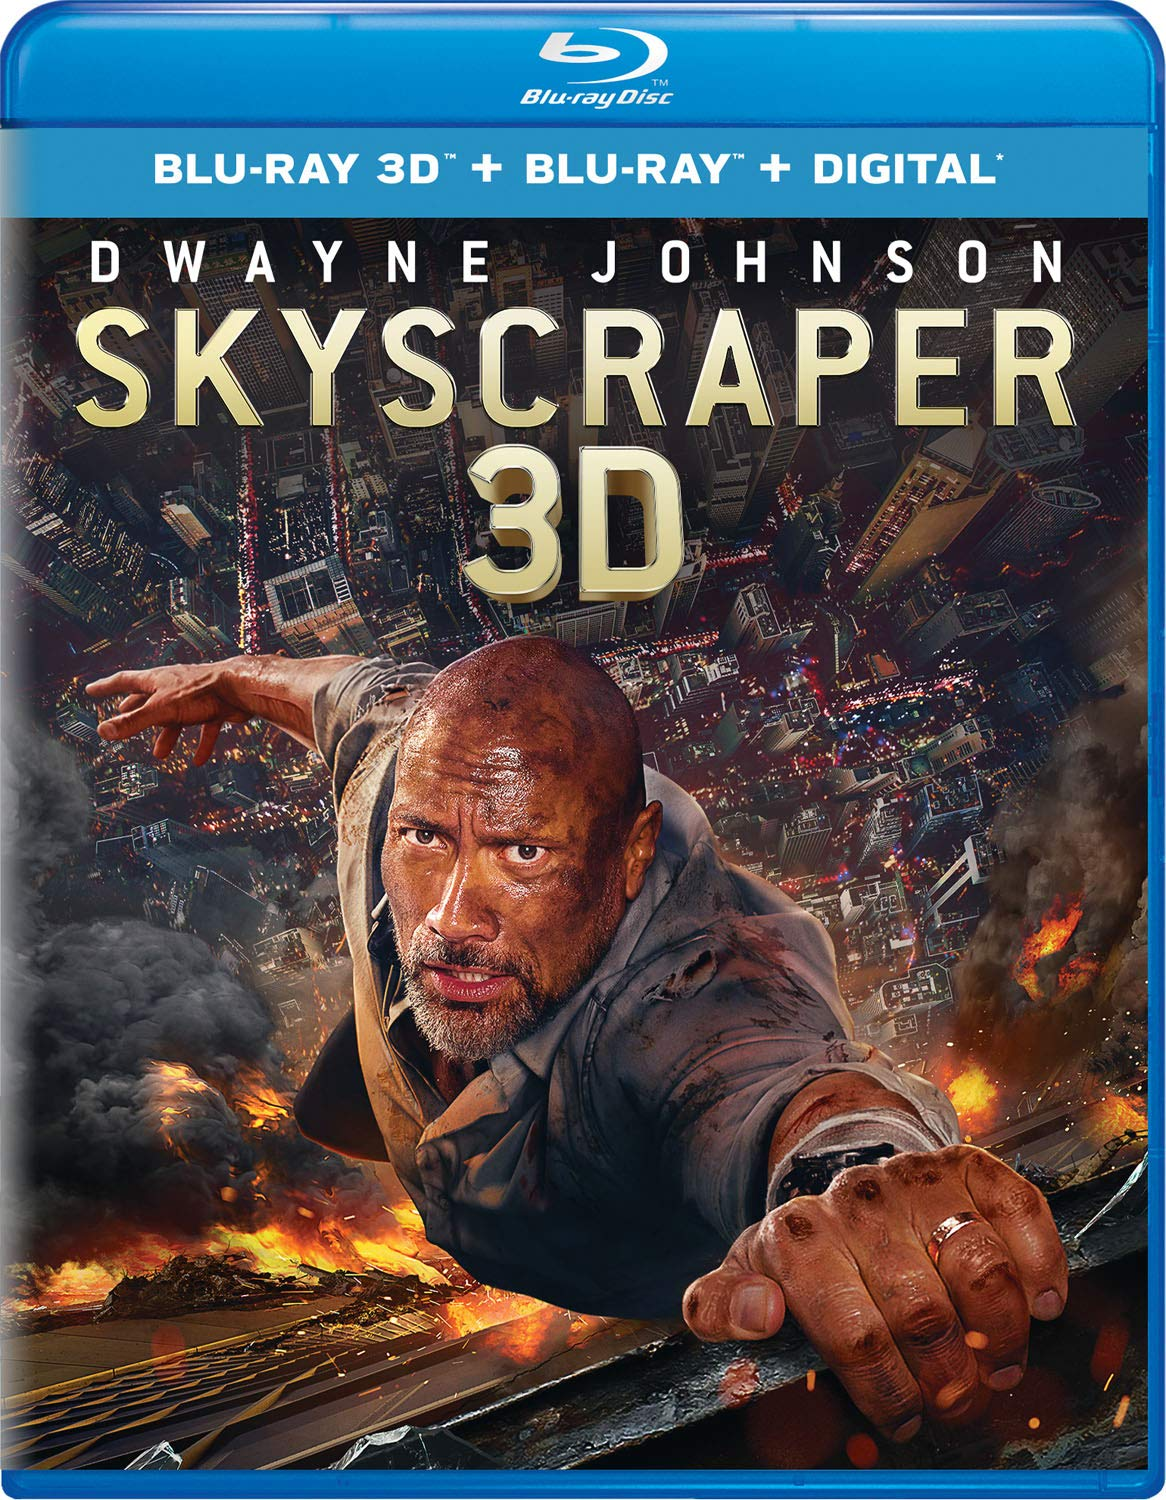 Blu-ray 3D : Skyscraper (With Blu-ray, 3 Dimensional, 2 Pack, Digital Copy)